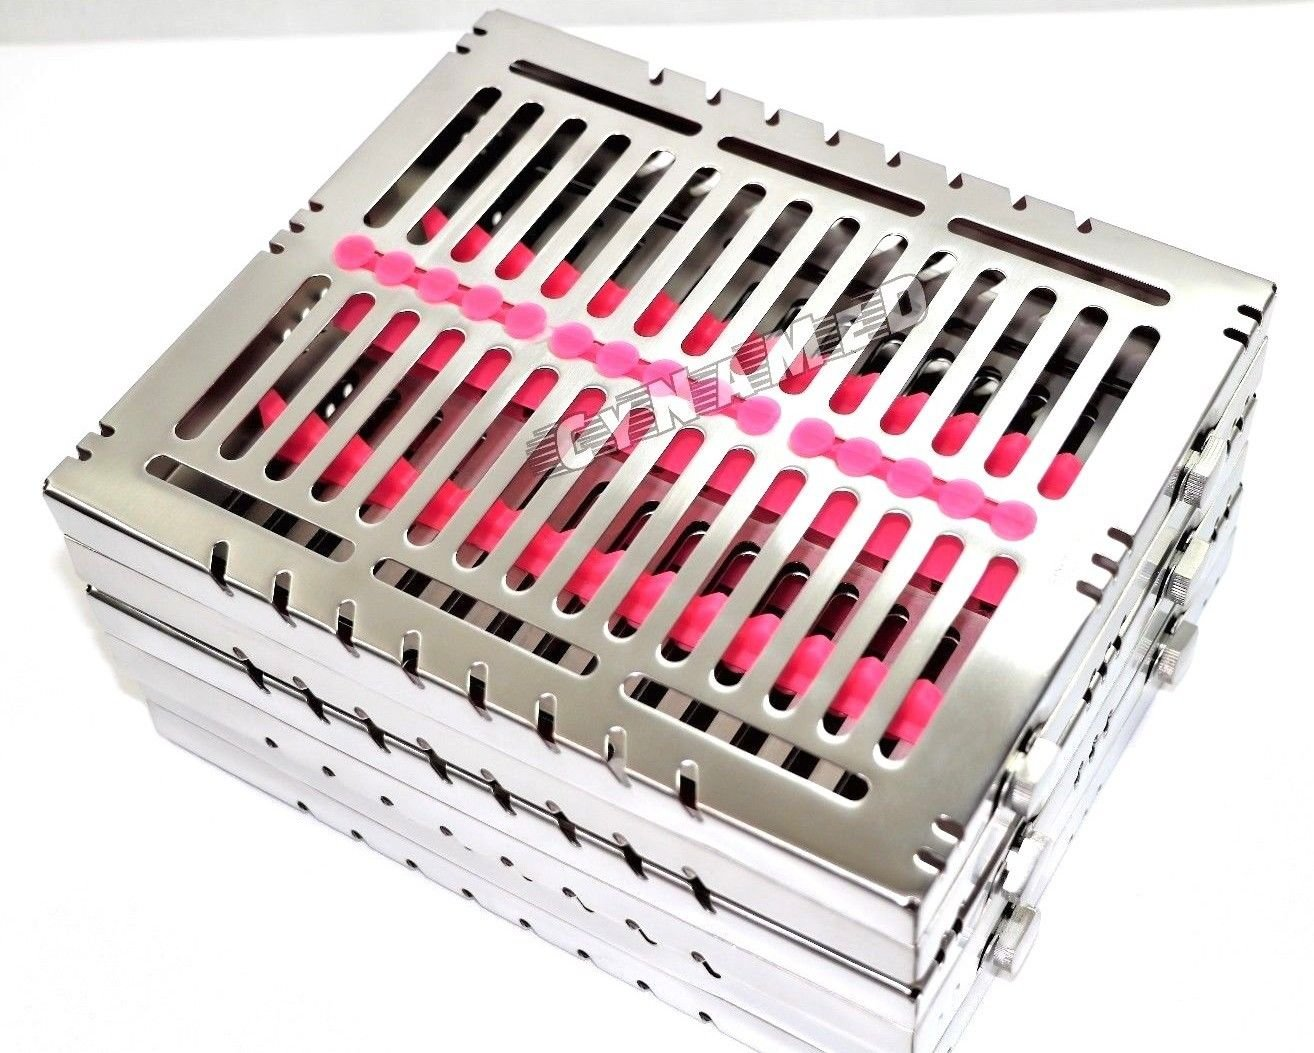 3 German Dental Autoclave Sterilization Cassette Tray for 15 Instruments 8.25X7.25X1.25'' Pink CYNAMED